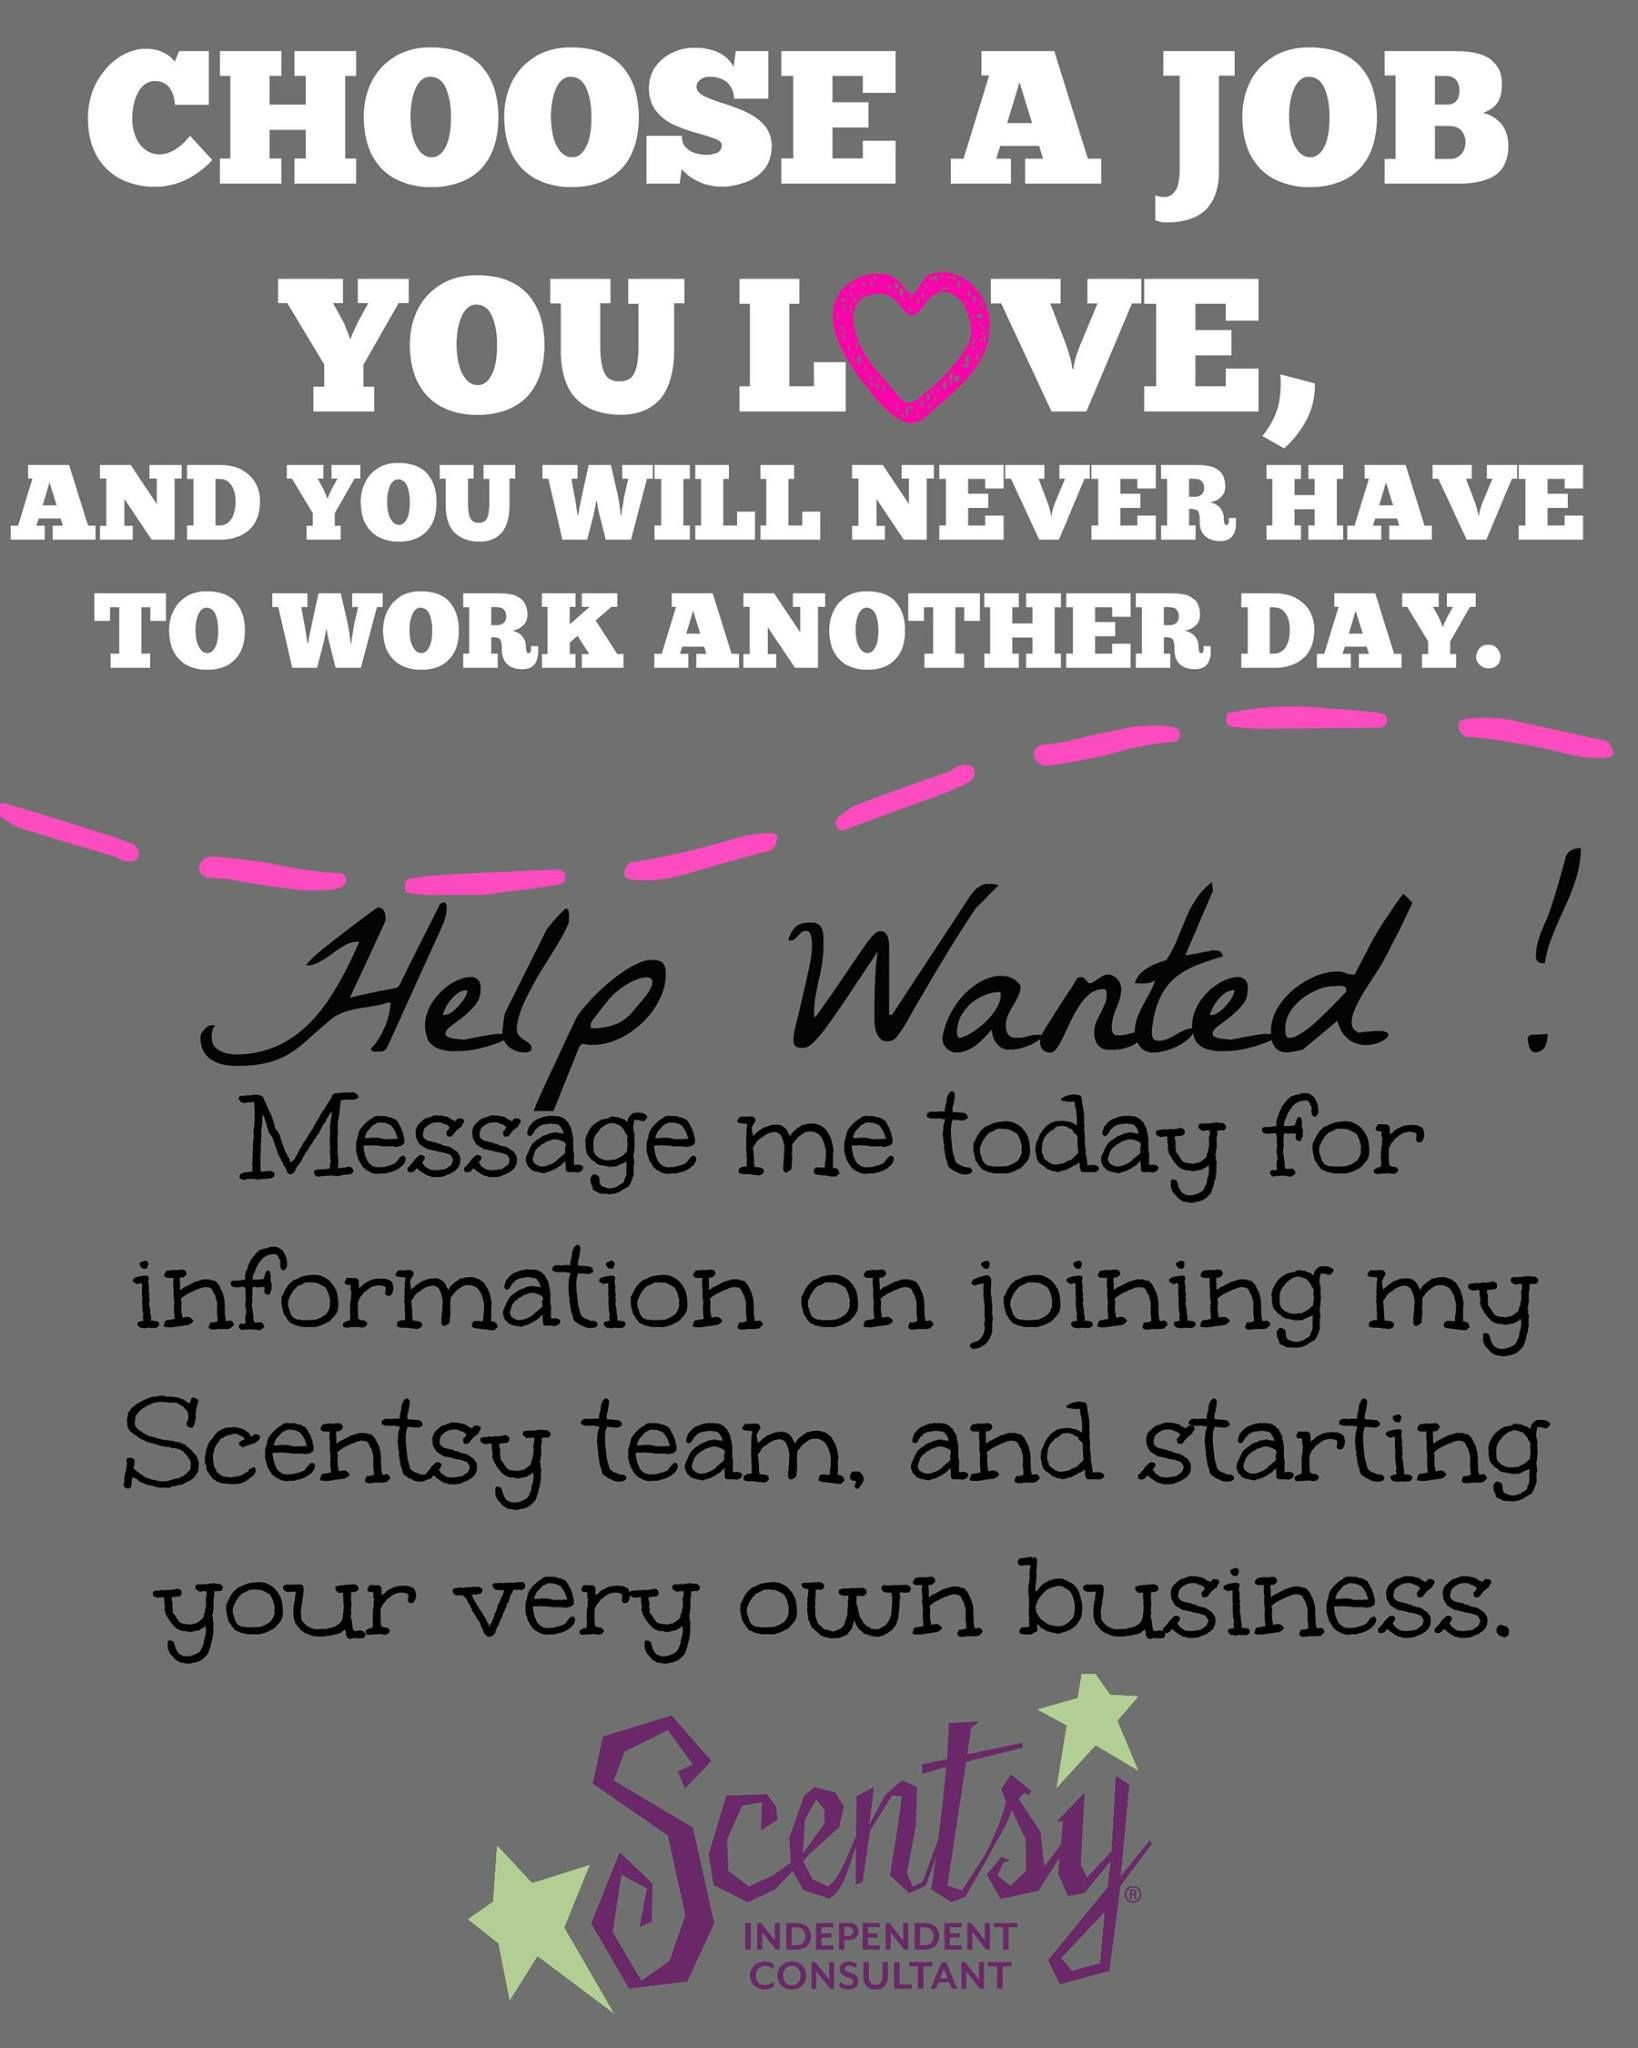 Choose a job you love and you will never have to work another day. HELP WANTED! #business www.iamwickless.com